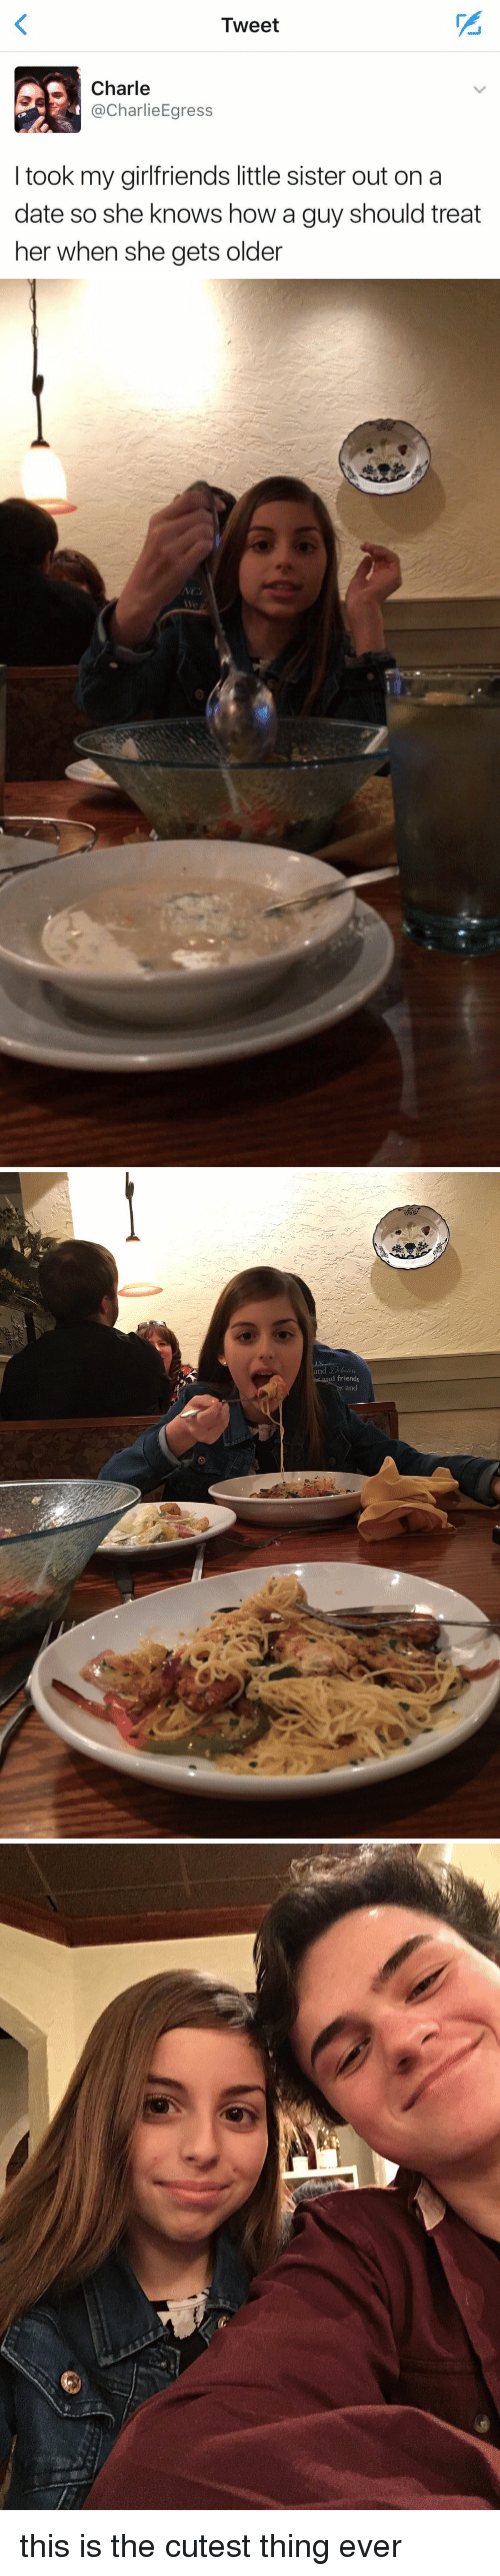 debatable: Tweet  AS Charle  harlie Egress  took my girlfriends little sister out on a  date so she knows how a guy should treat  her when she gets older   and Debate  nd friends  and this is the cutest thing ever